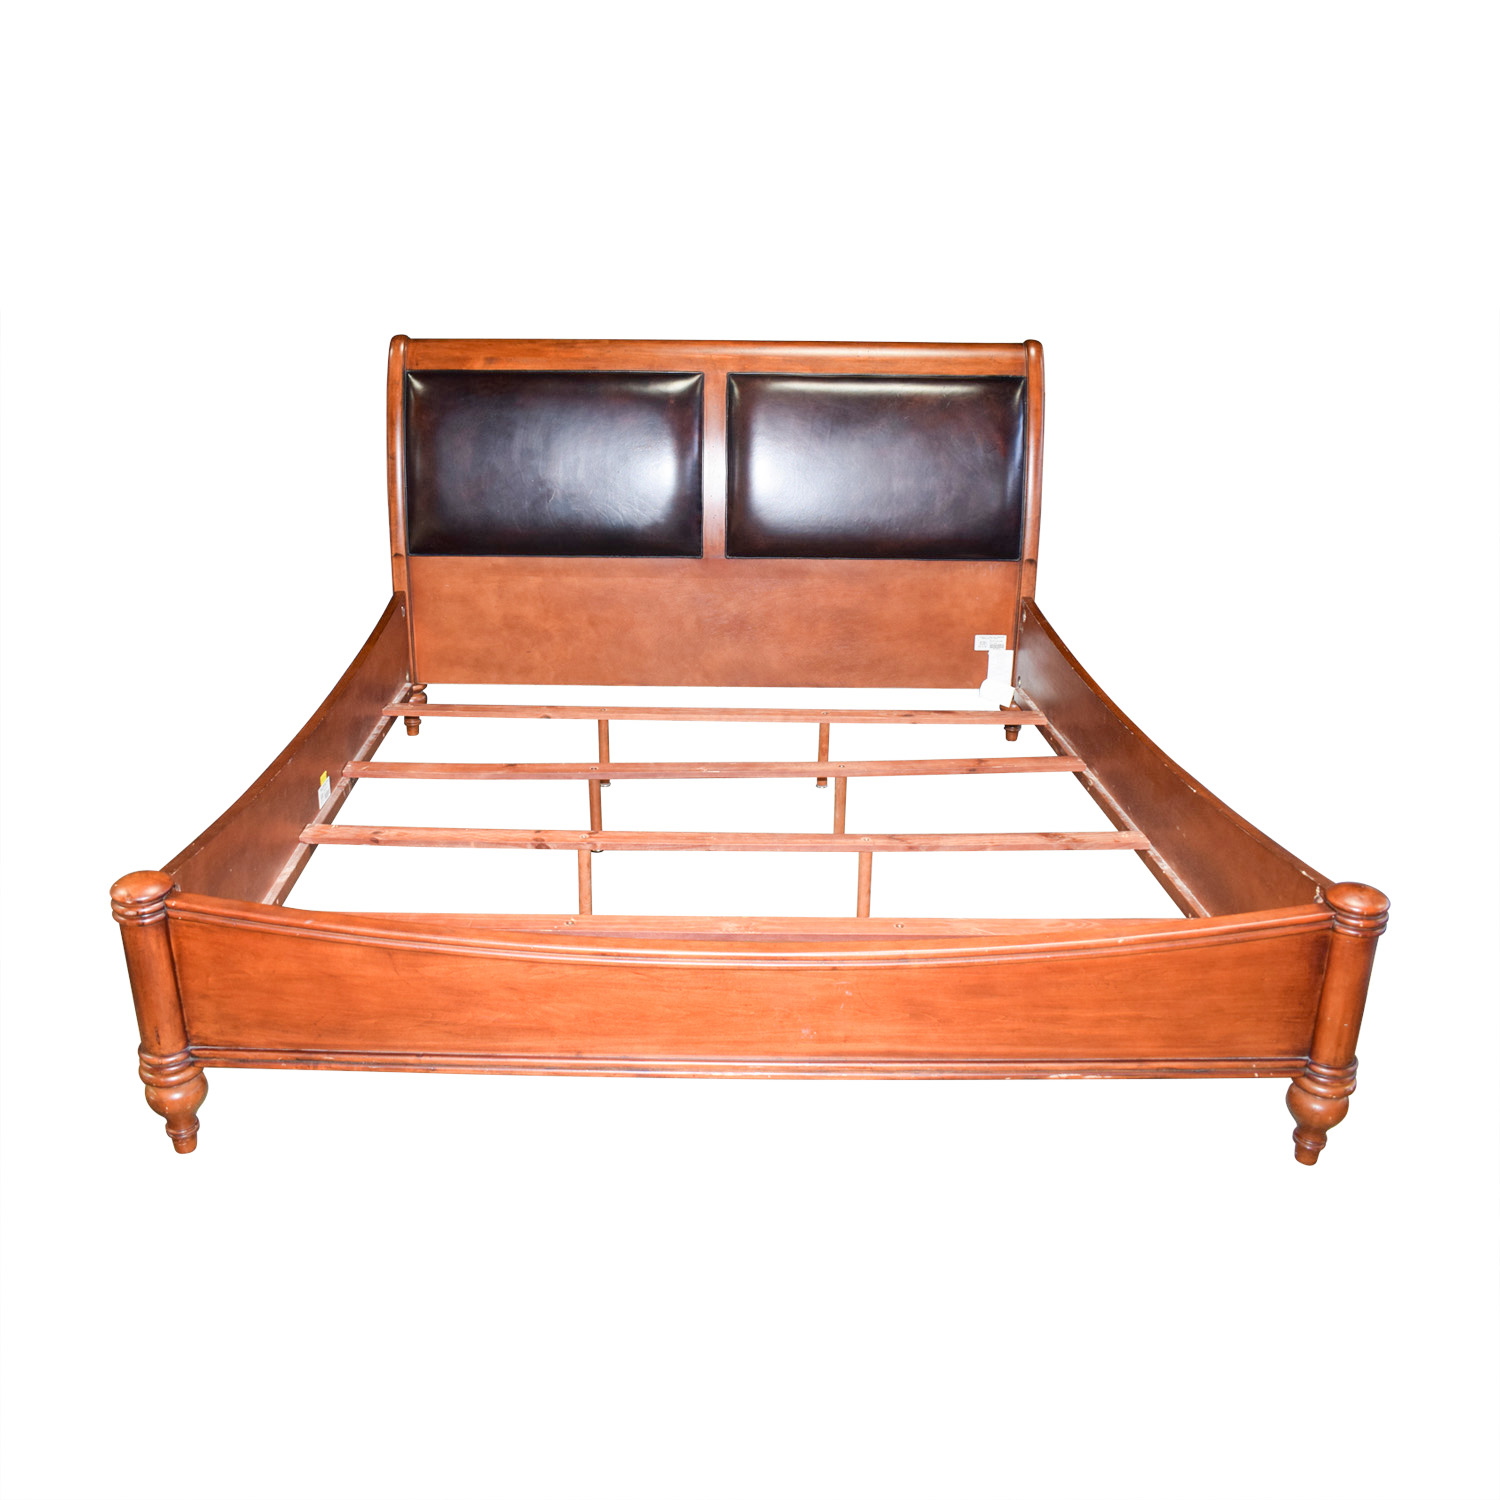 Stanley Furniture Stanley Furniture Leather and Wood Sleigh King Bed Frame on sale